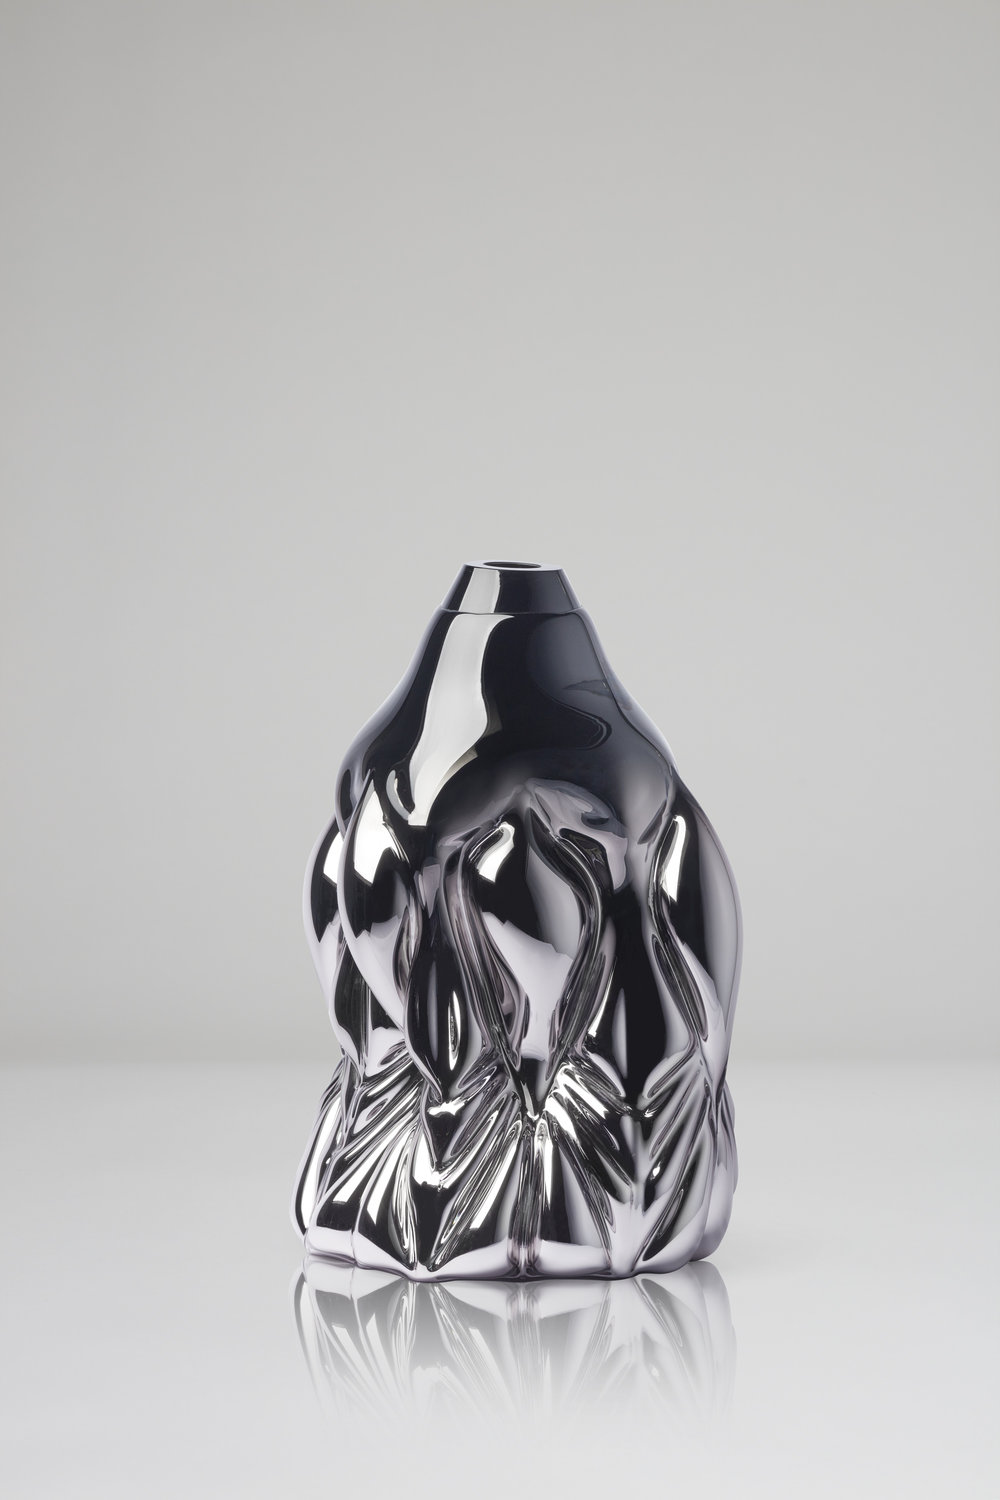 Goldfish Print, black metallic  2018, Boda Glasbruk Shape-blown glass, mirror foiled 48 cm x 32 cm Edition 1 + 2 AP